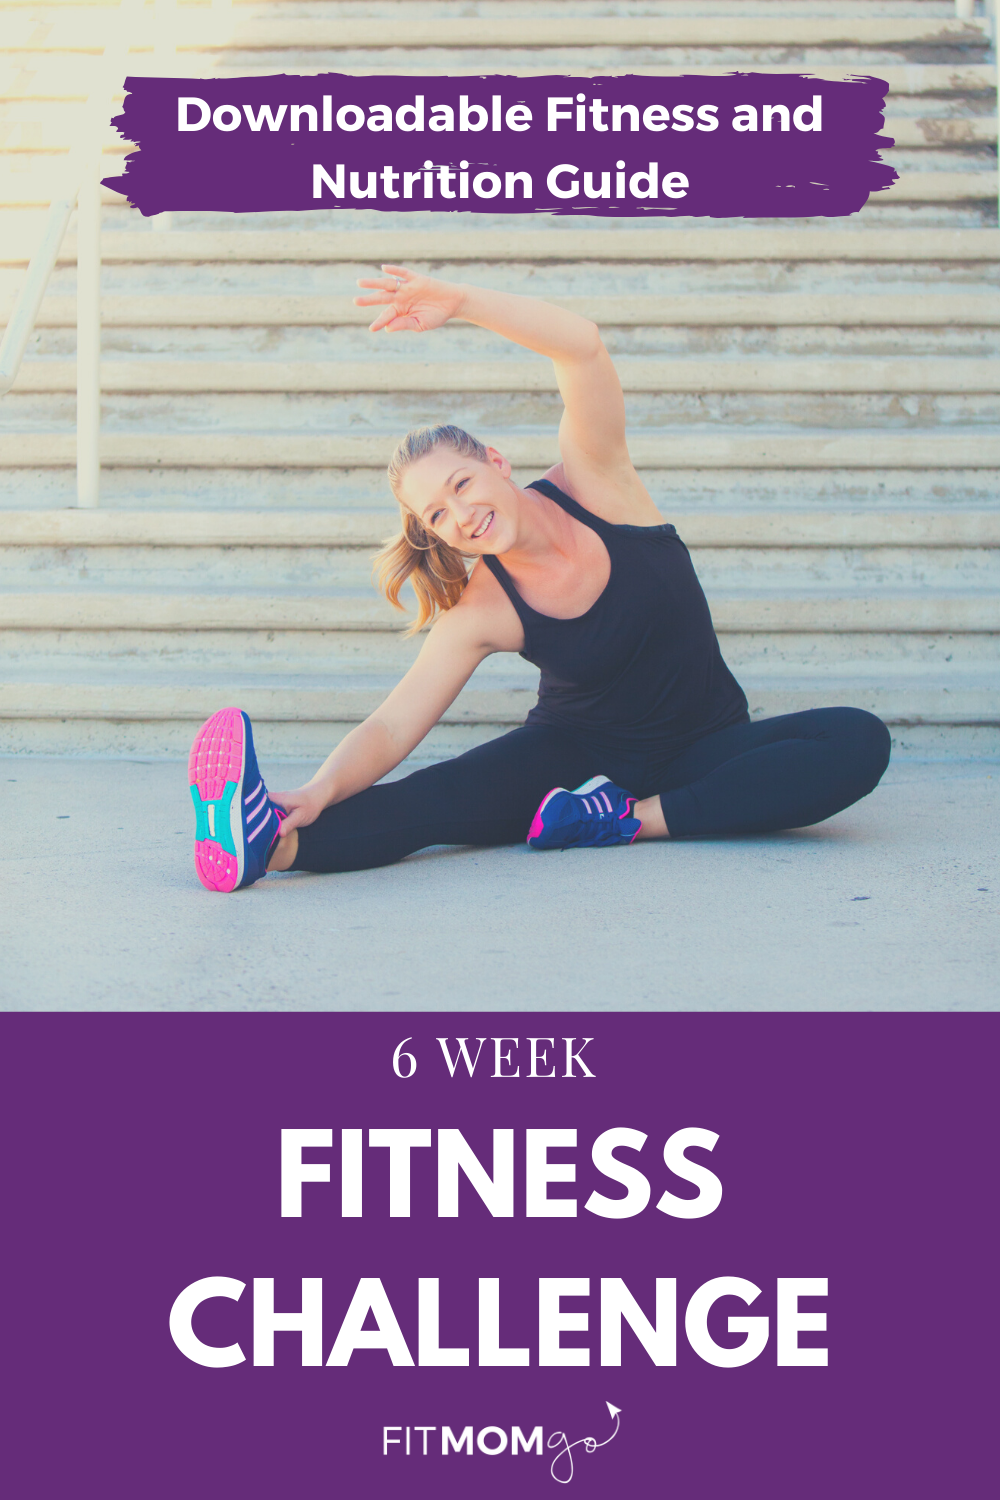 6 Week Fitness Challenge Downloadable Guide In 2020 Workout Challenge Fit Mom Motivation Strength Workout